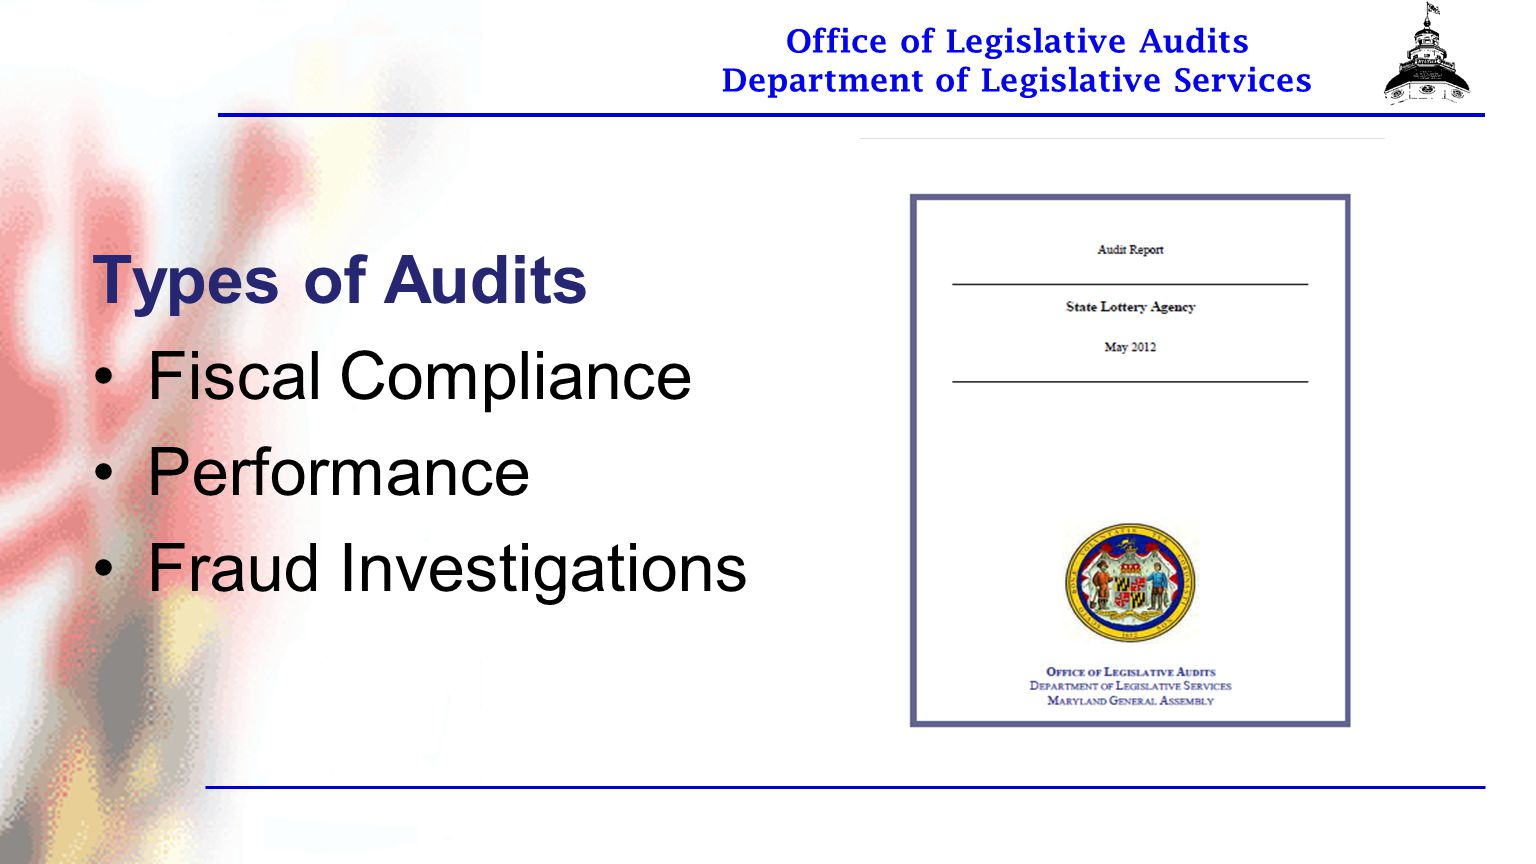 Office of Legislative Audits Department of Legislative Services OLA Website Visit our website to read our audit reports or obtain more information about OLA.